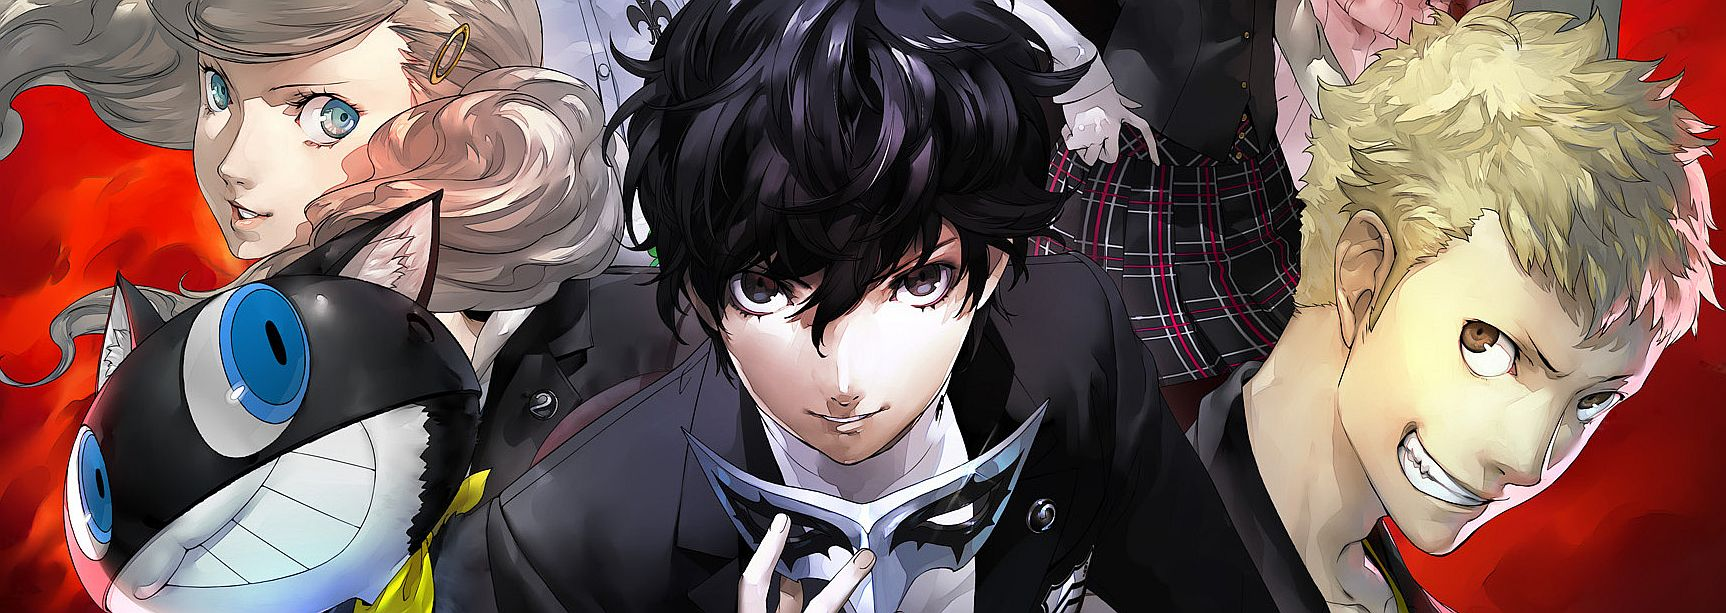 Persona 5 Given A Lovey Dovey Release Date For North